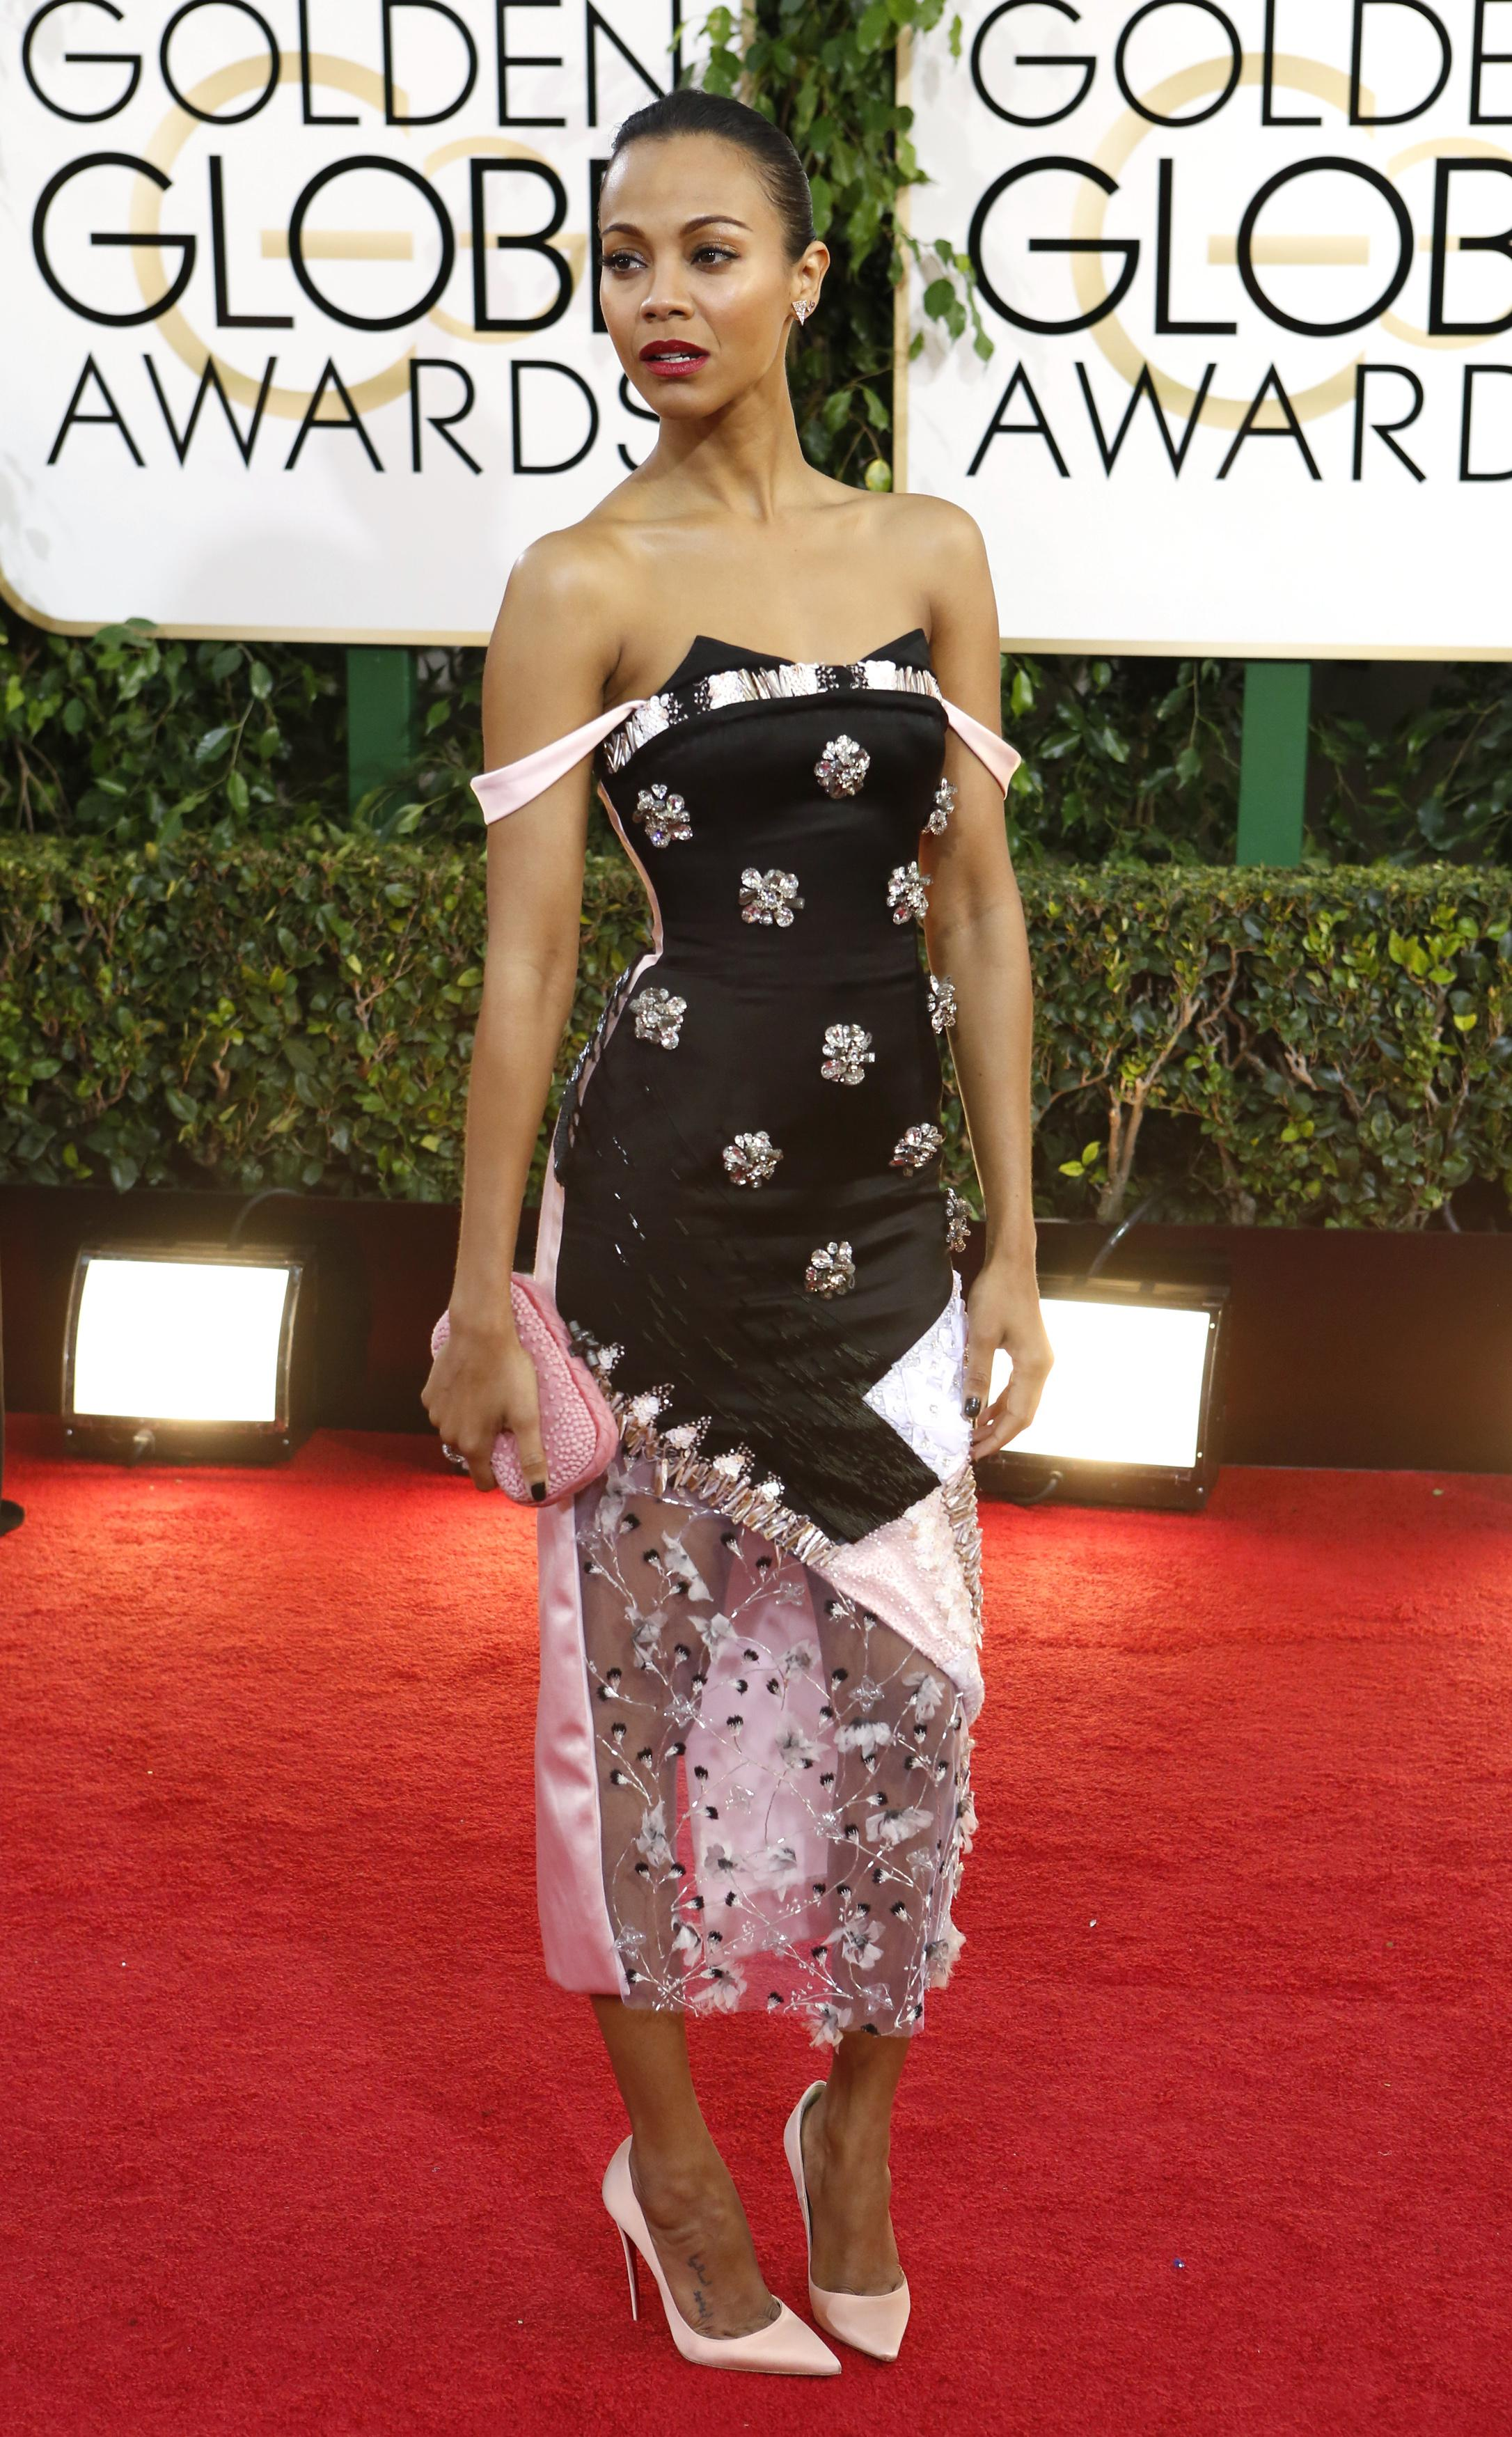 Golden globes 2014 red carpet recap the best and worst dressed photos - Golden globes red carpet ...